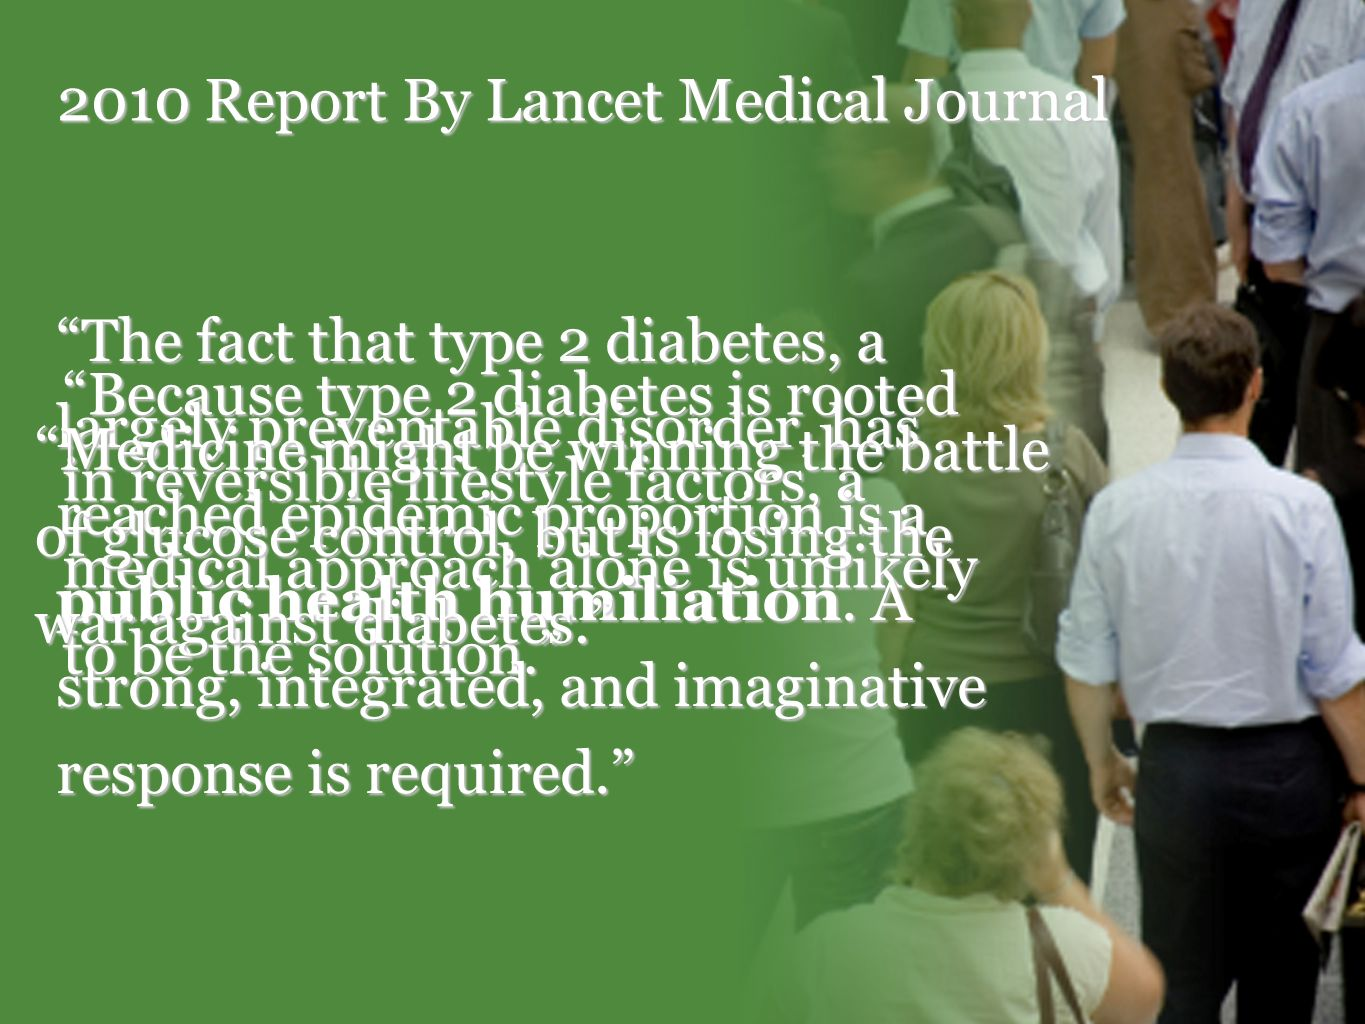 2010 Report By Lancet Medical Journal Because type 2 diabetes is rooted in reversible lifestyle factors, a medical approach alone is unlikely to be th